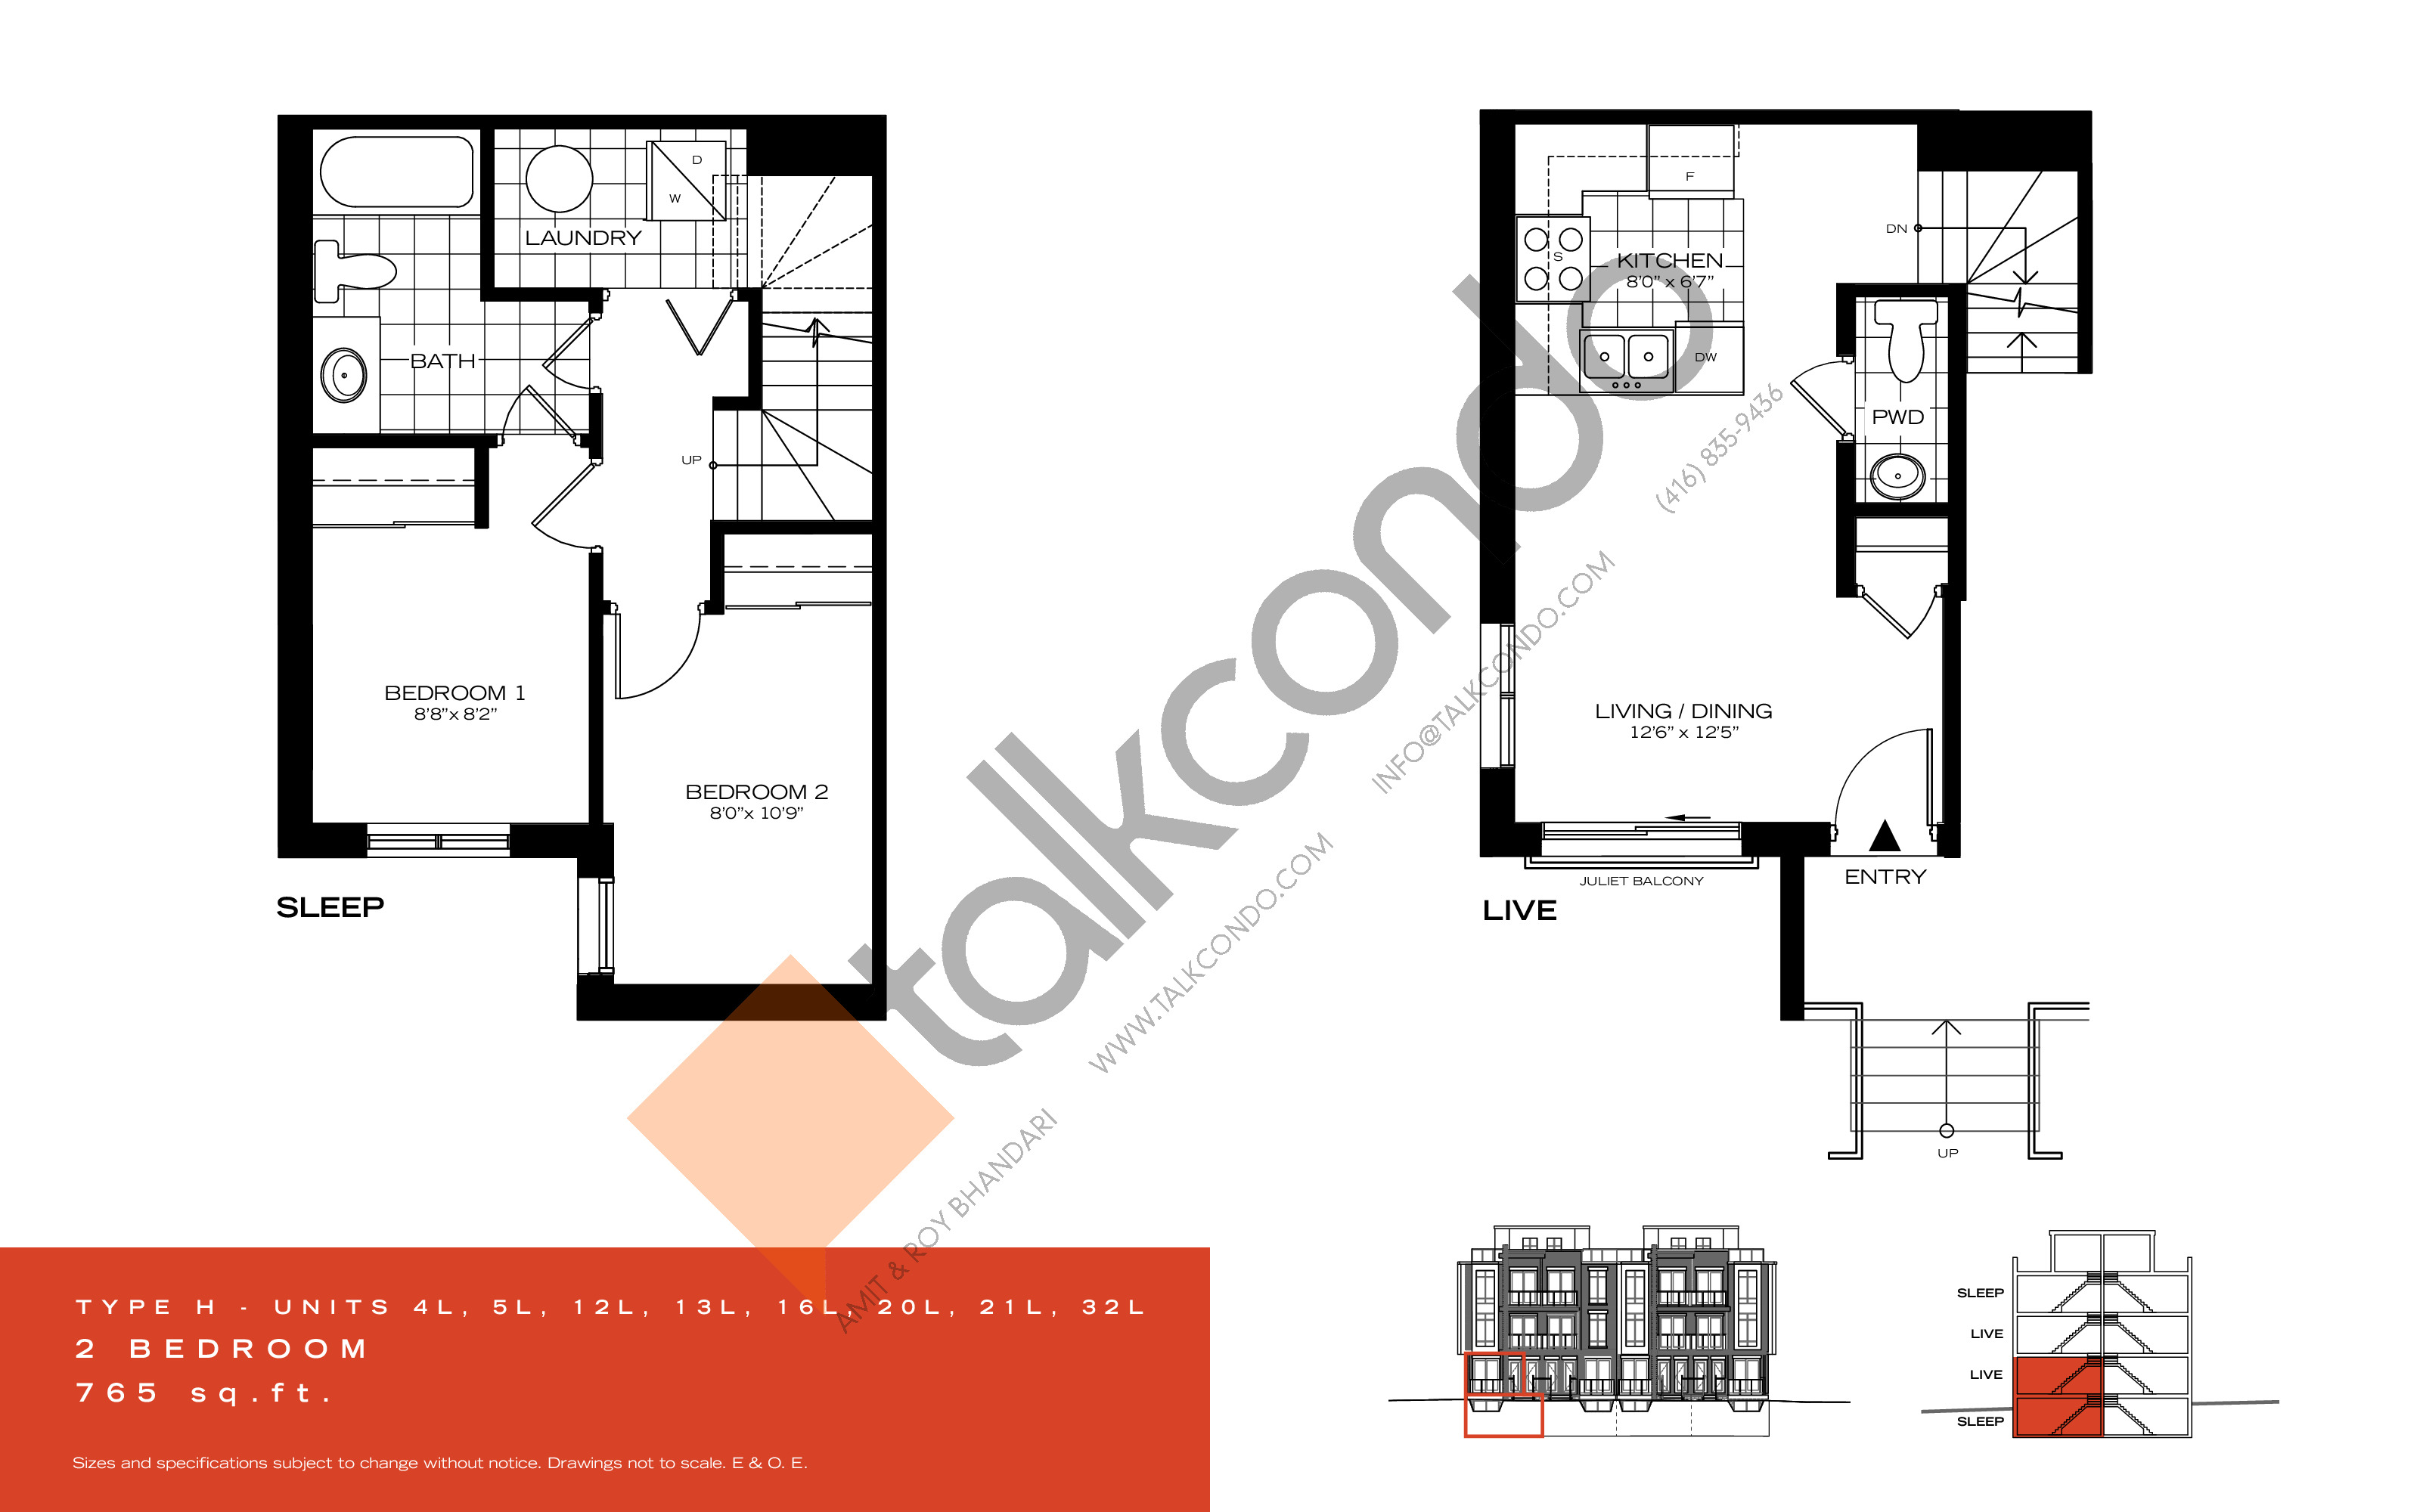 Type H Floor Plan at Wycliffe at the Promenade - 765 sq.ft